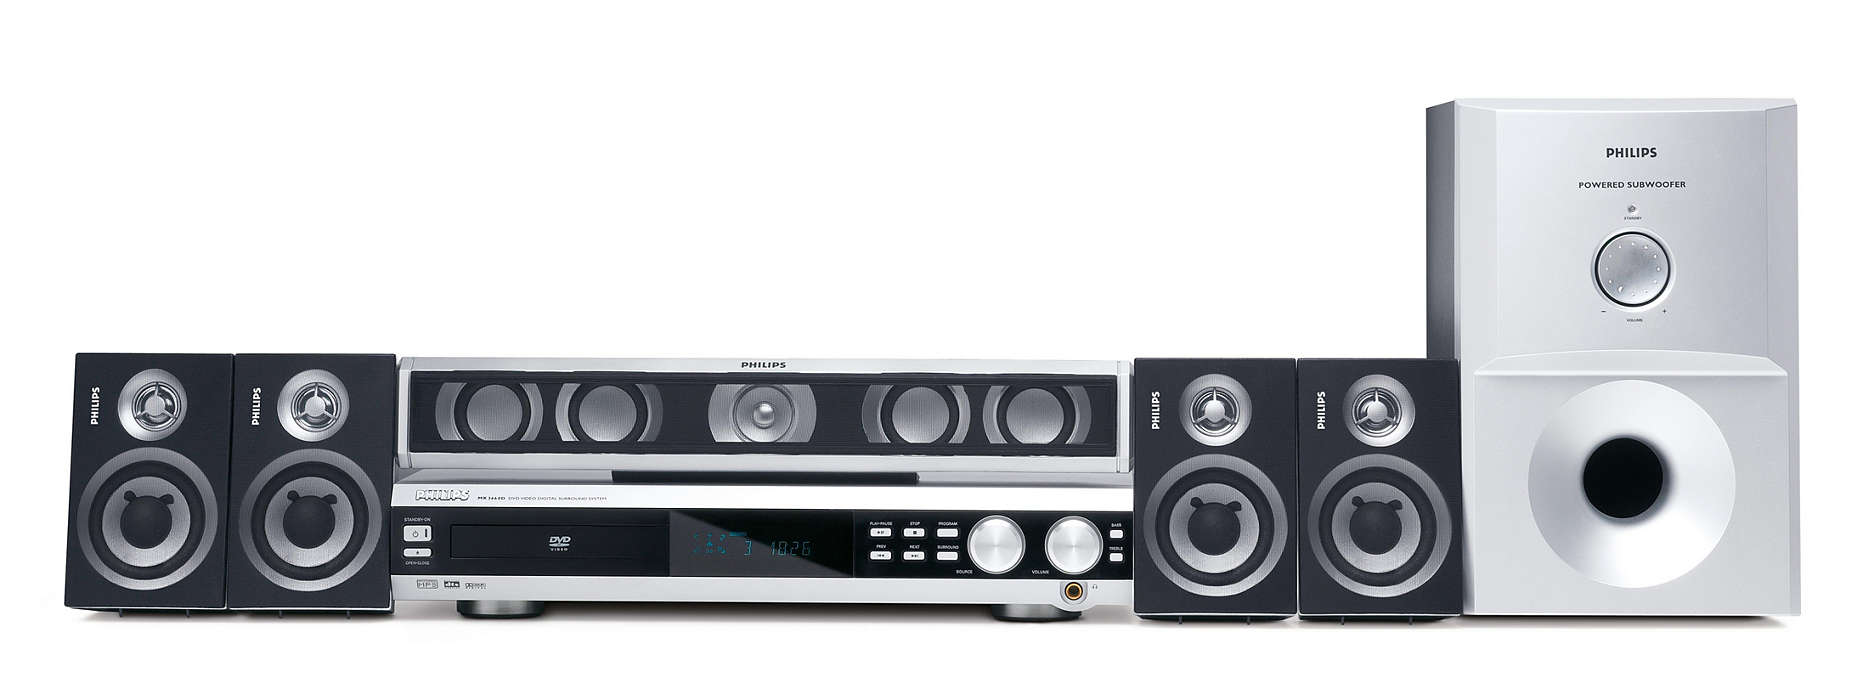 Turn your Living Room into a Digital Home Theater